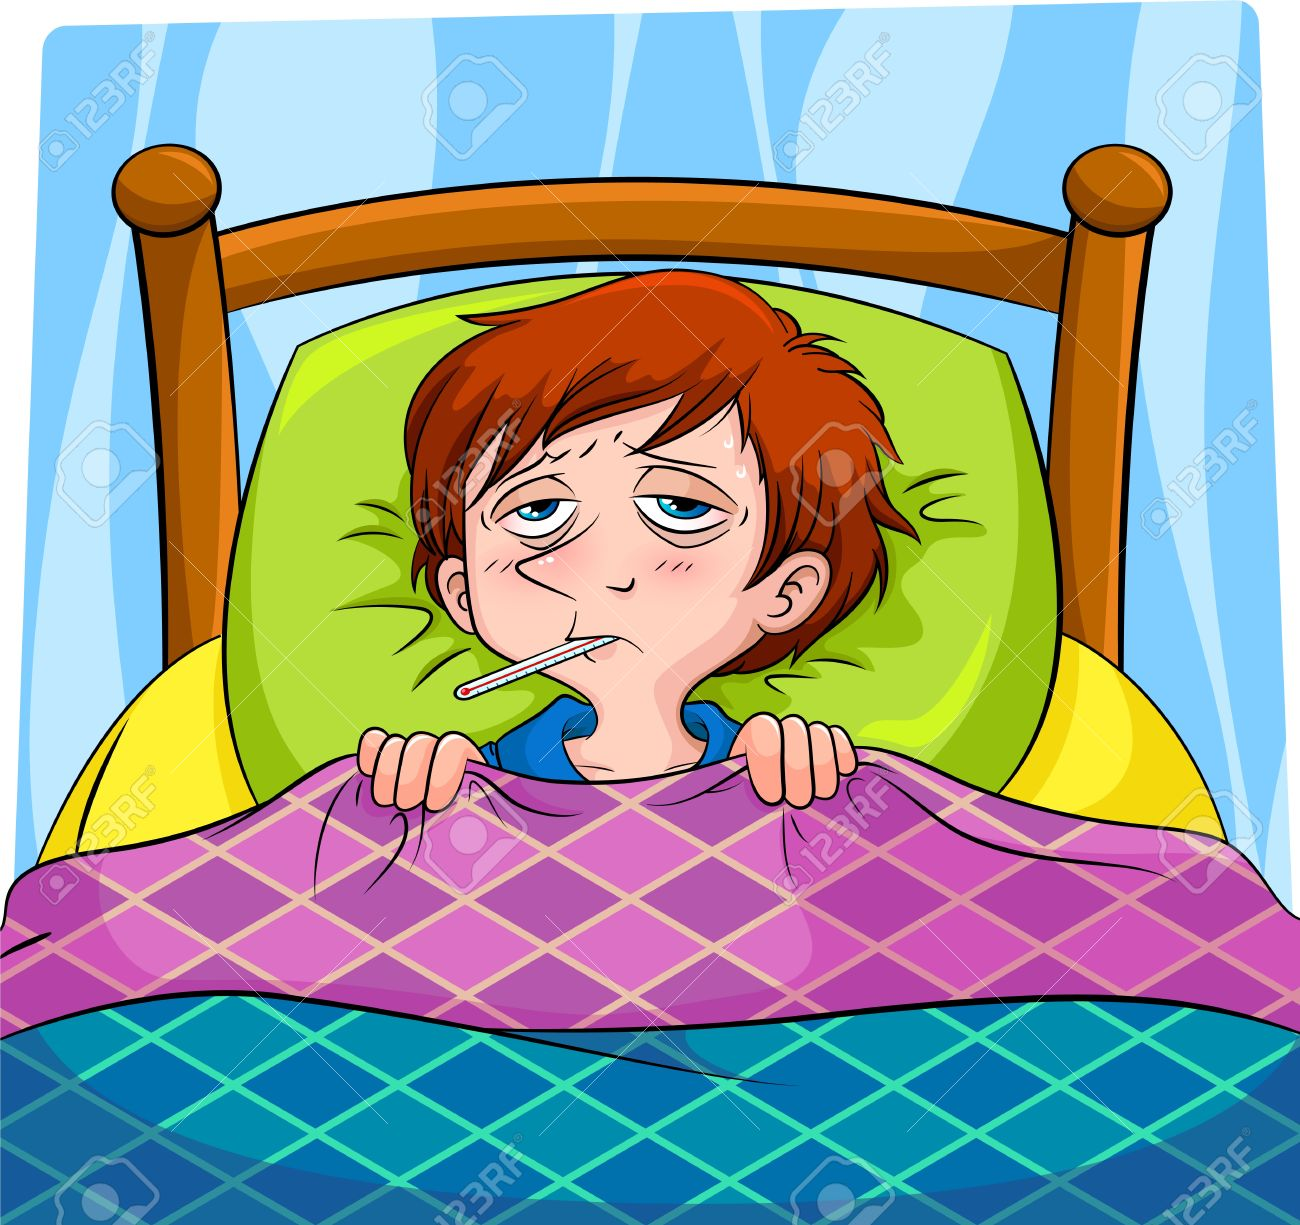 sick child  sick person lying in bed Illustration. Sick Child Stock Photos   Pictures  Royalty Free Sick Child Images